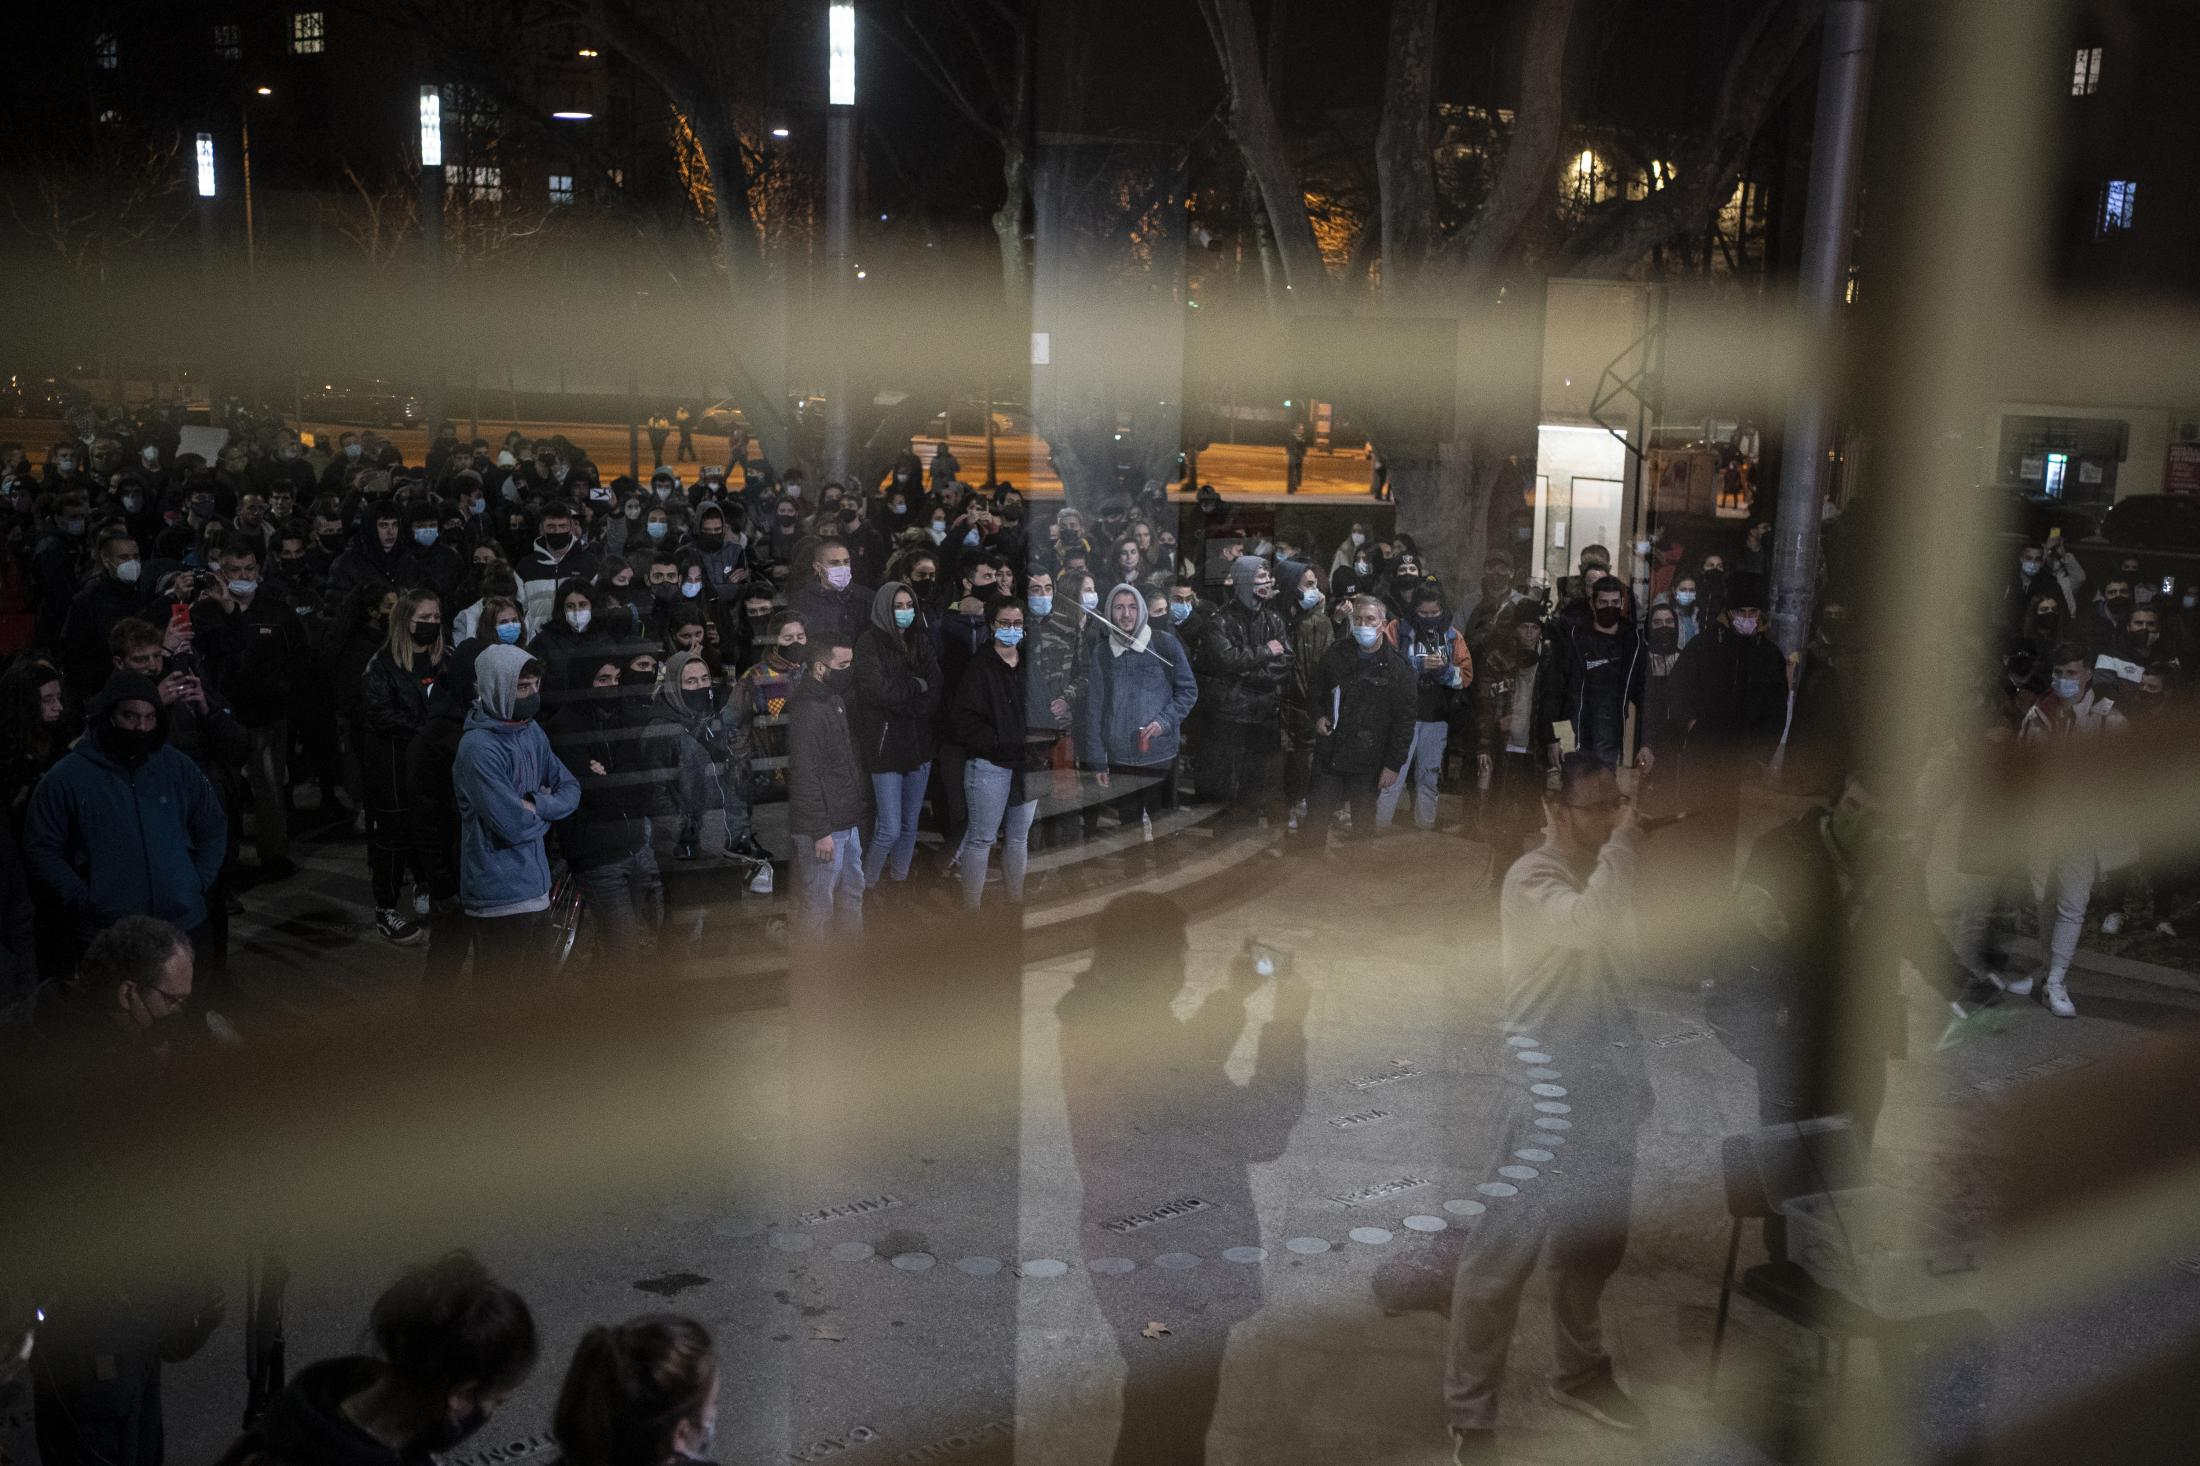 Rap singer Pablo Hasel, 32, is seen reflected on a window, bottom right, as he speeches at students gathered outside the University of Lleida, Spain, Monday, Feb. 15, 2021. A rapper in Spain and dozens of his supporters have locked themselves inside a university building in the artist's latest attempt to avoid a prison sentence for insulting the monarchy and praising terrorism. (AP Photo/Joan Mateu)